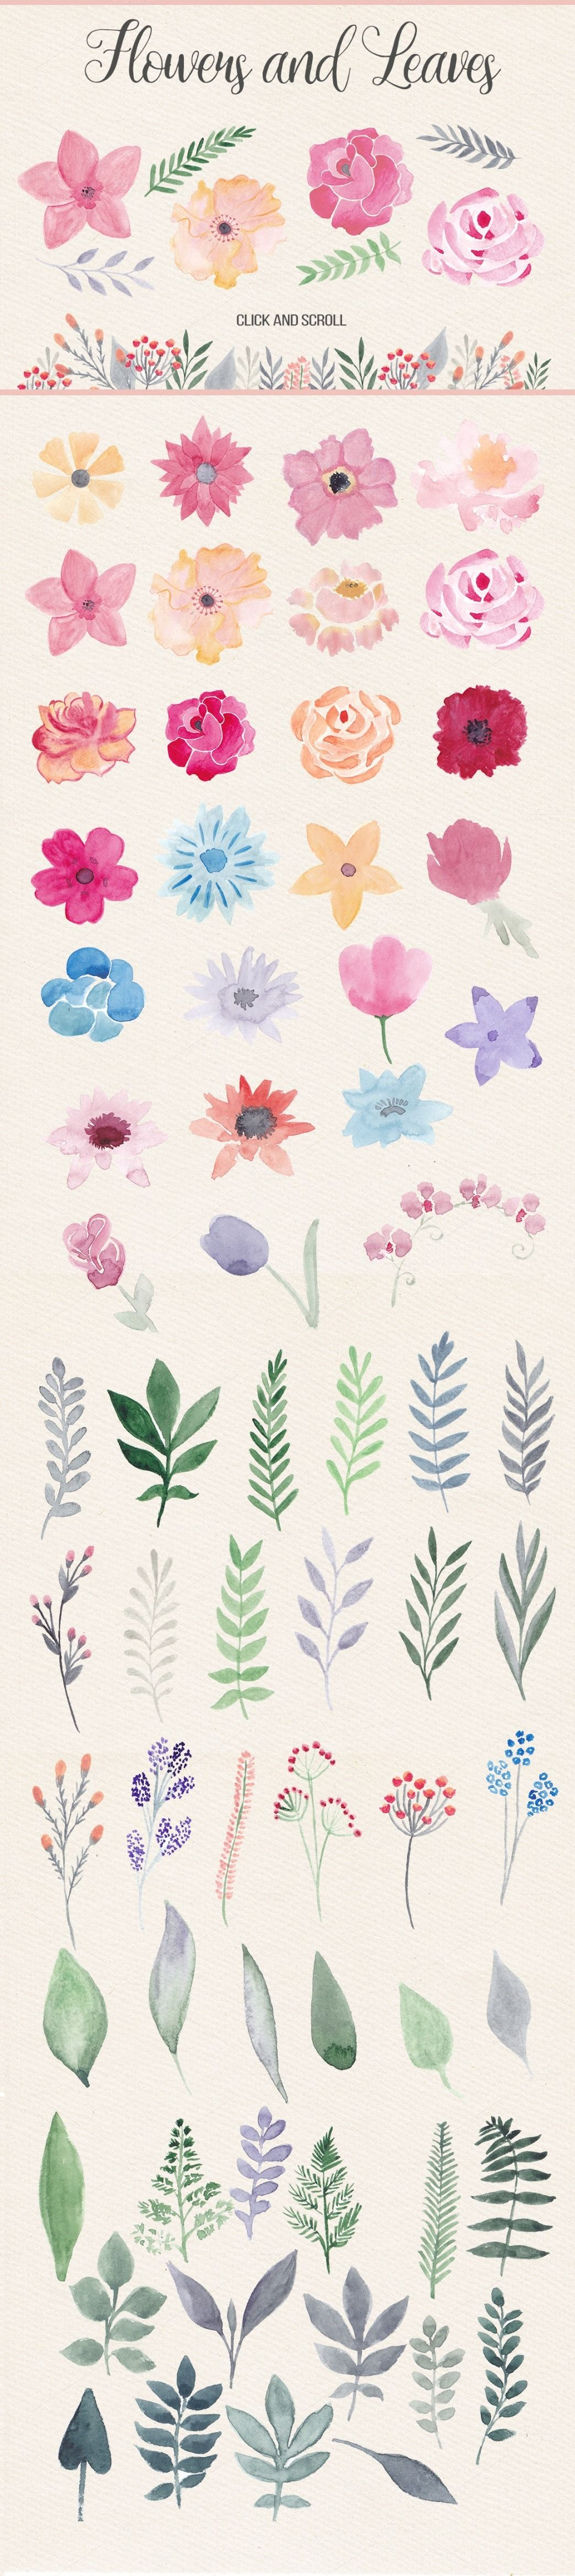 Watercolor flowers png clipart illustrations on creative market - Flower Watercolor Design Kit Pink Orange By Switzergirl On Creative Market